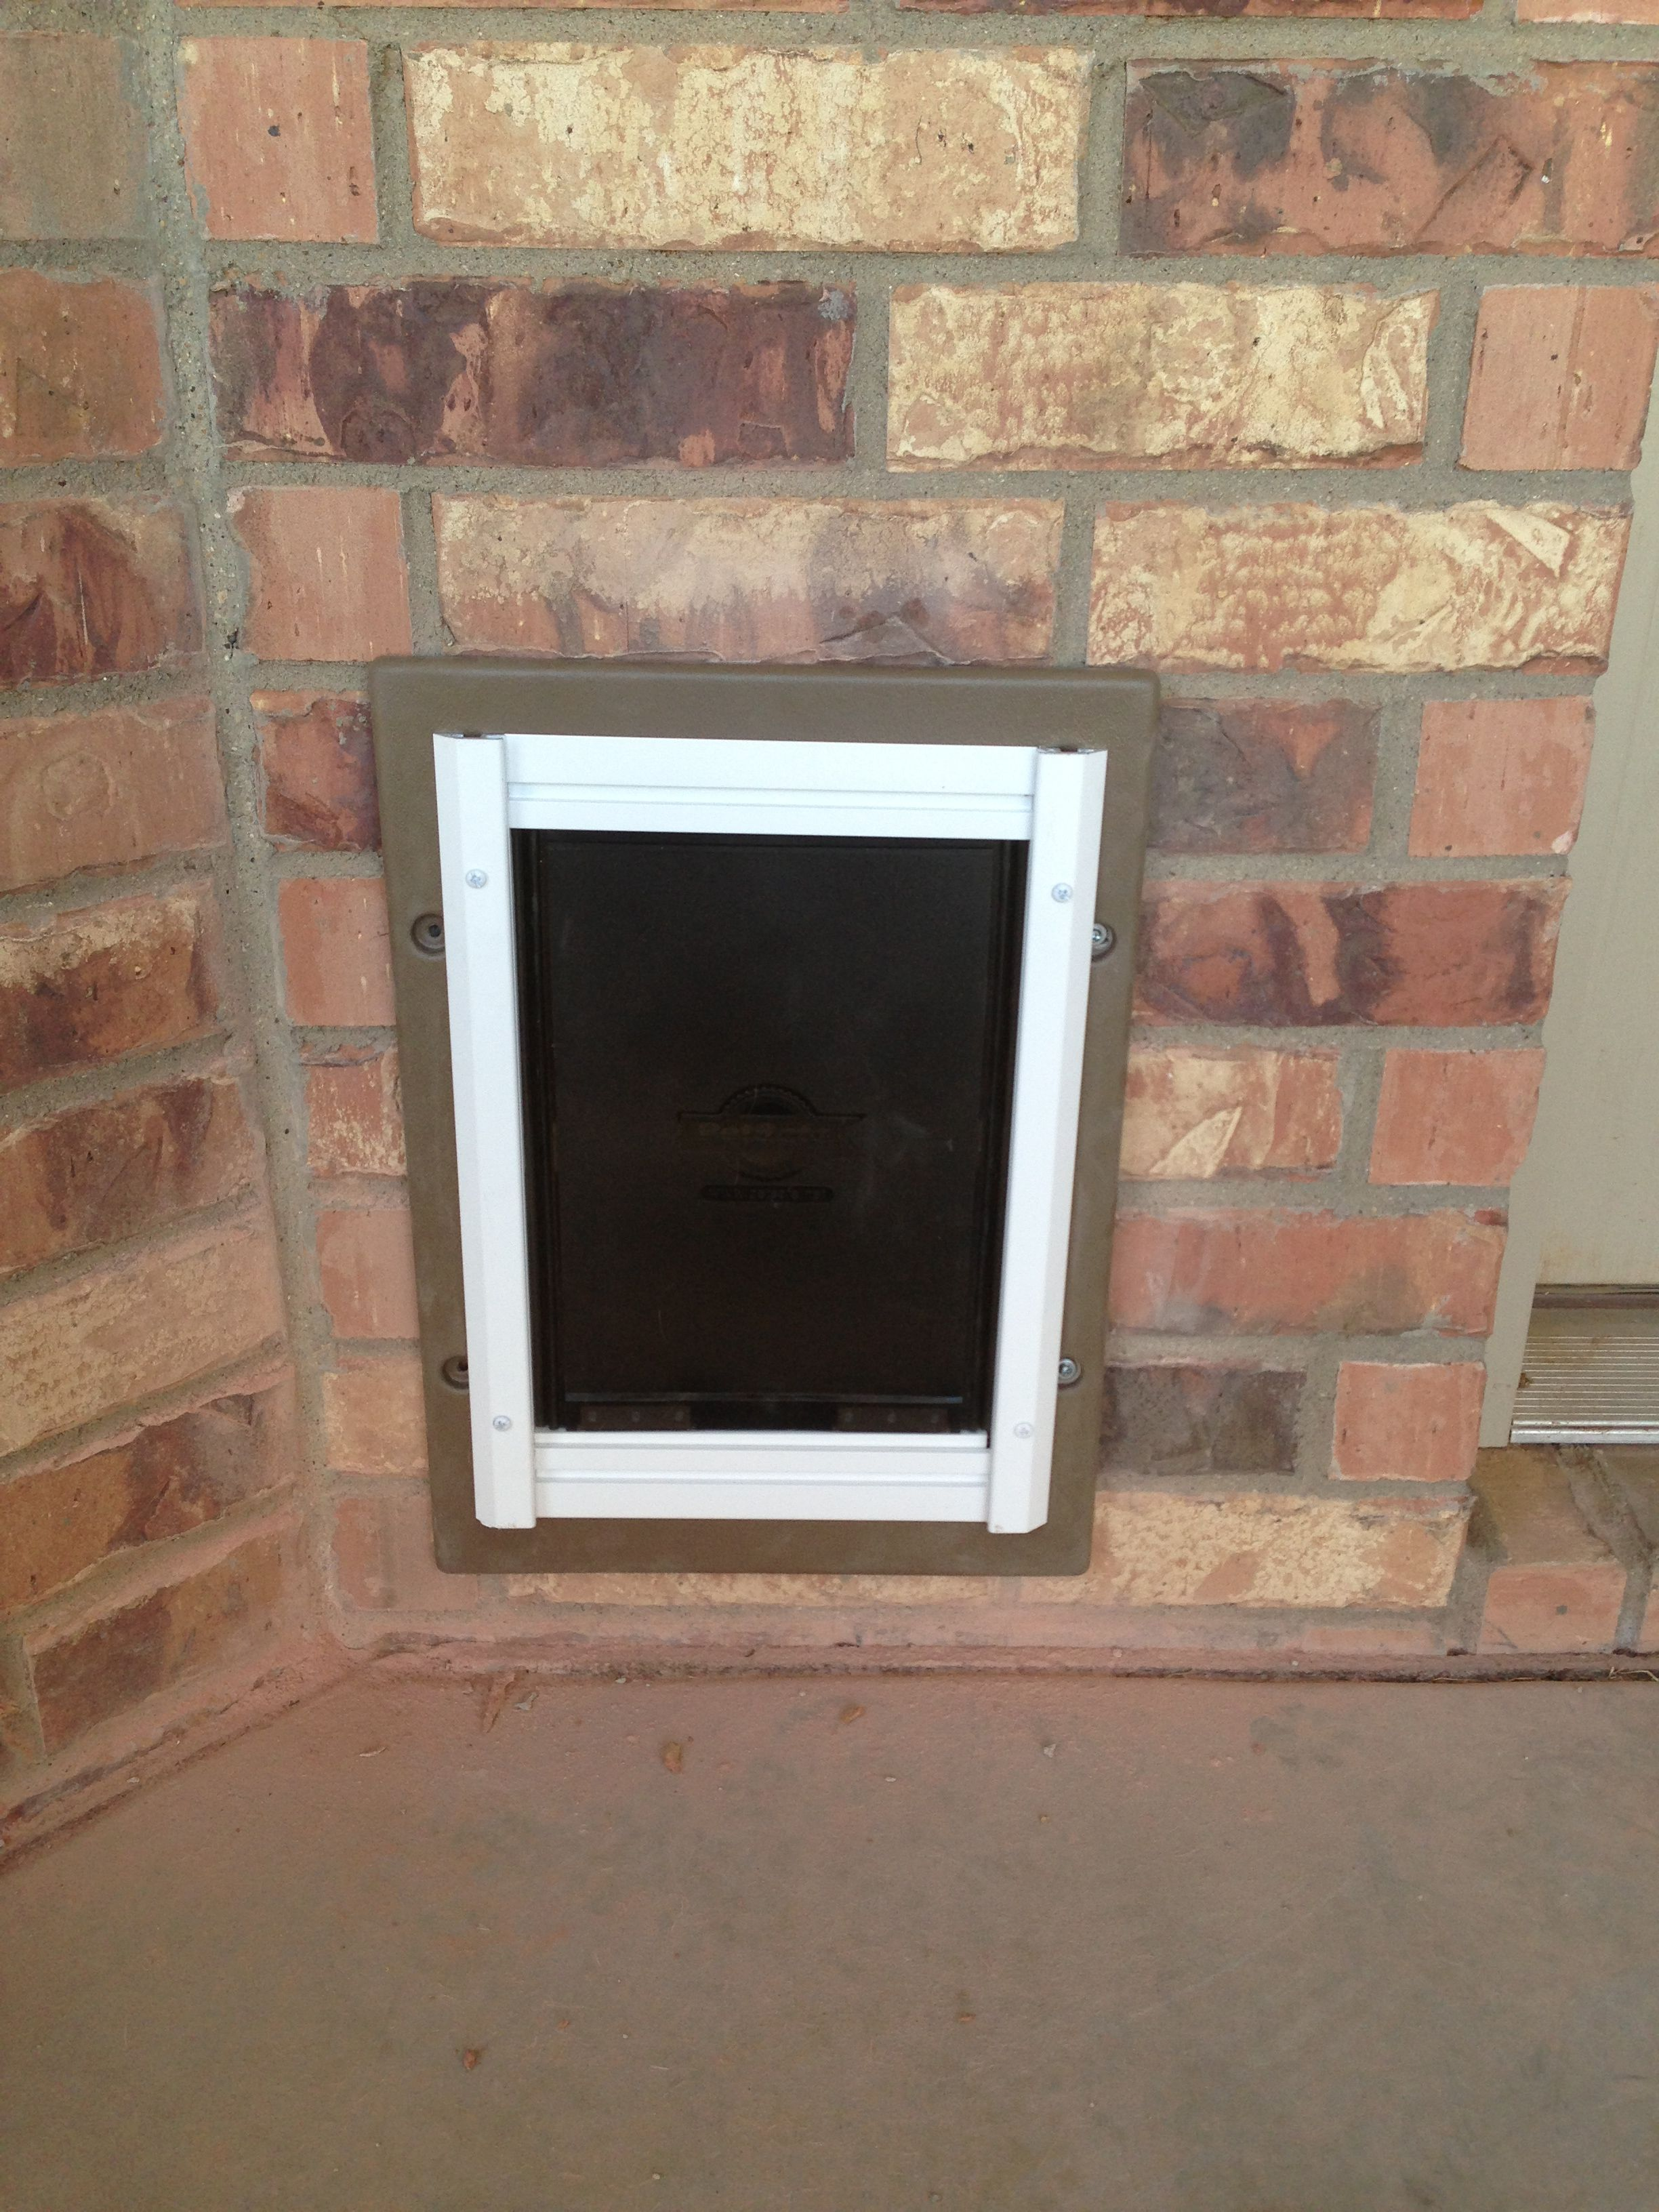 First Time Putting In A Through The Brick Wall Doggy Door For Our Pups!